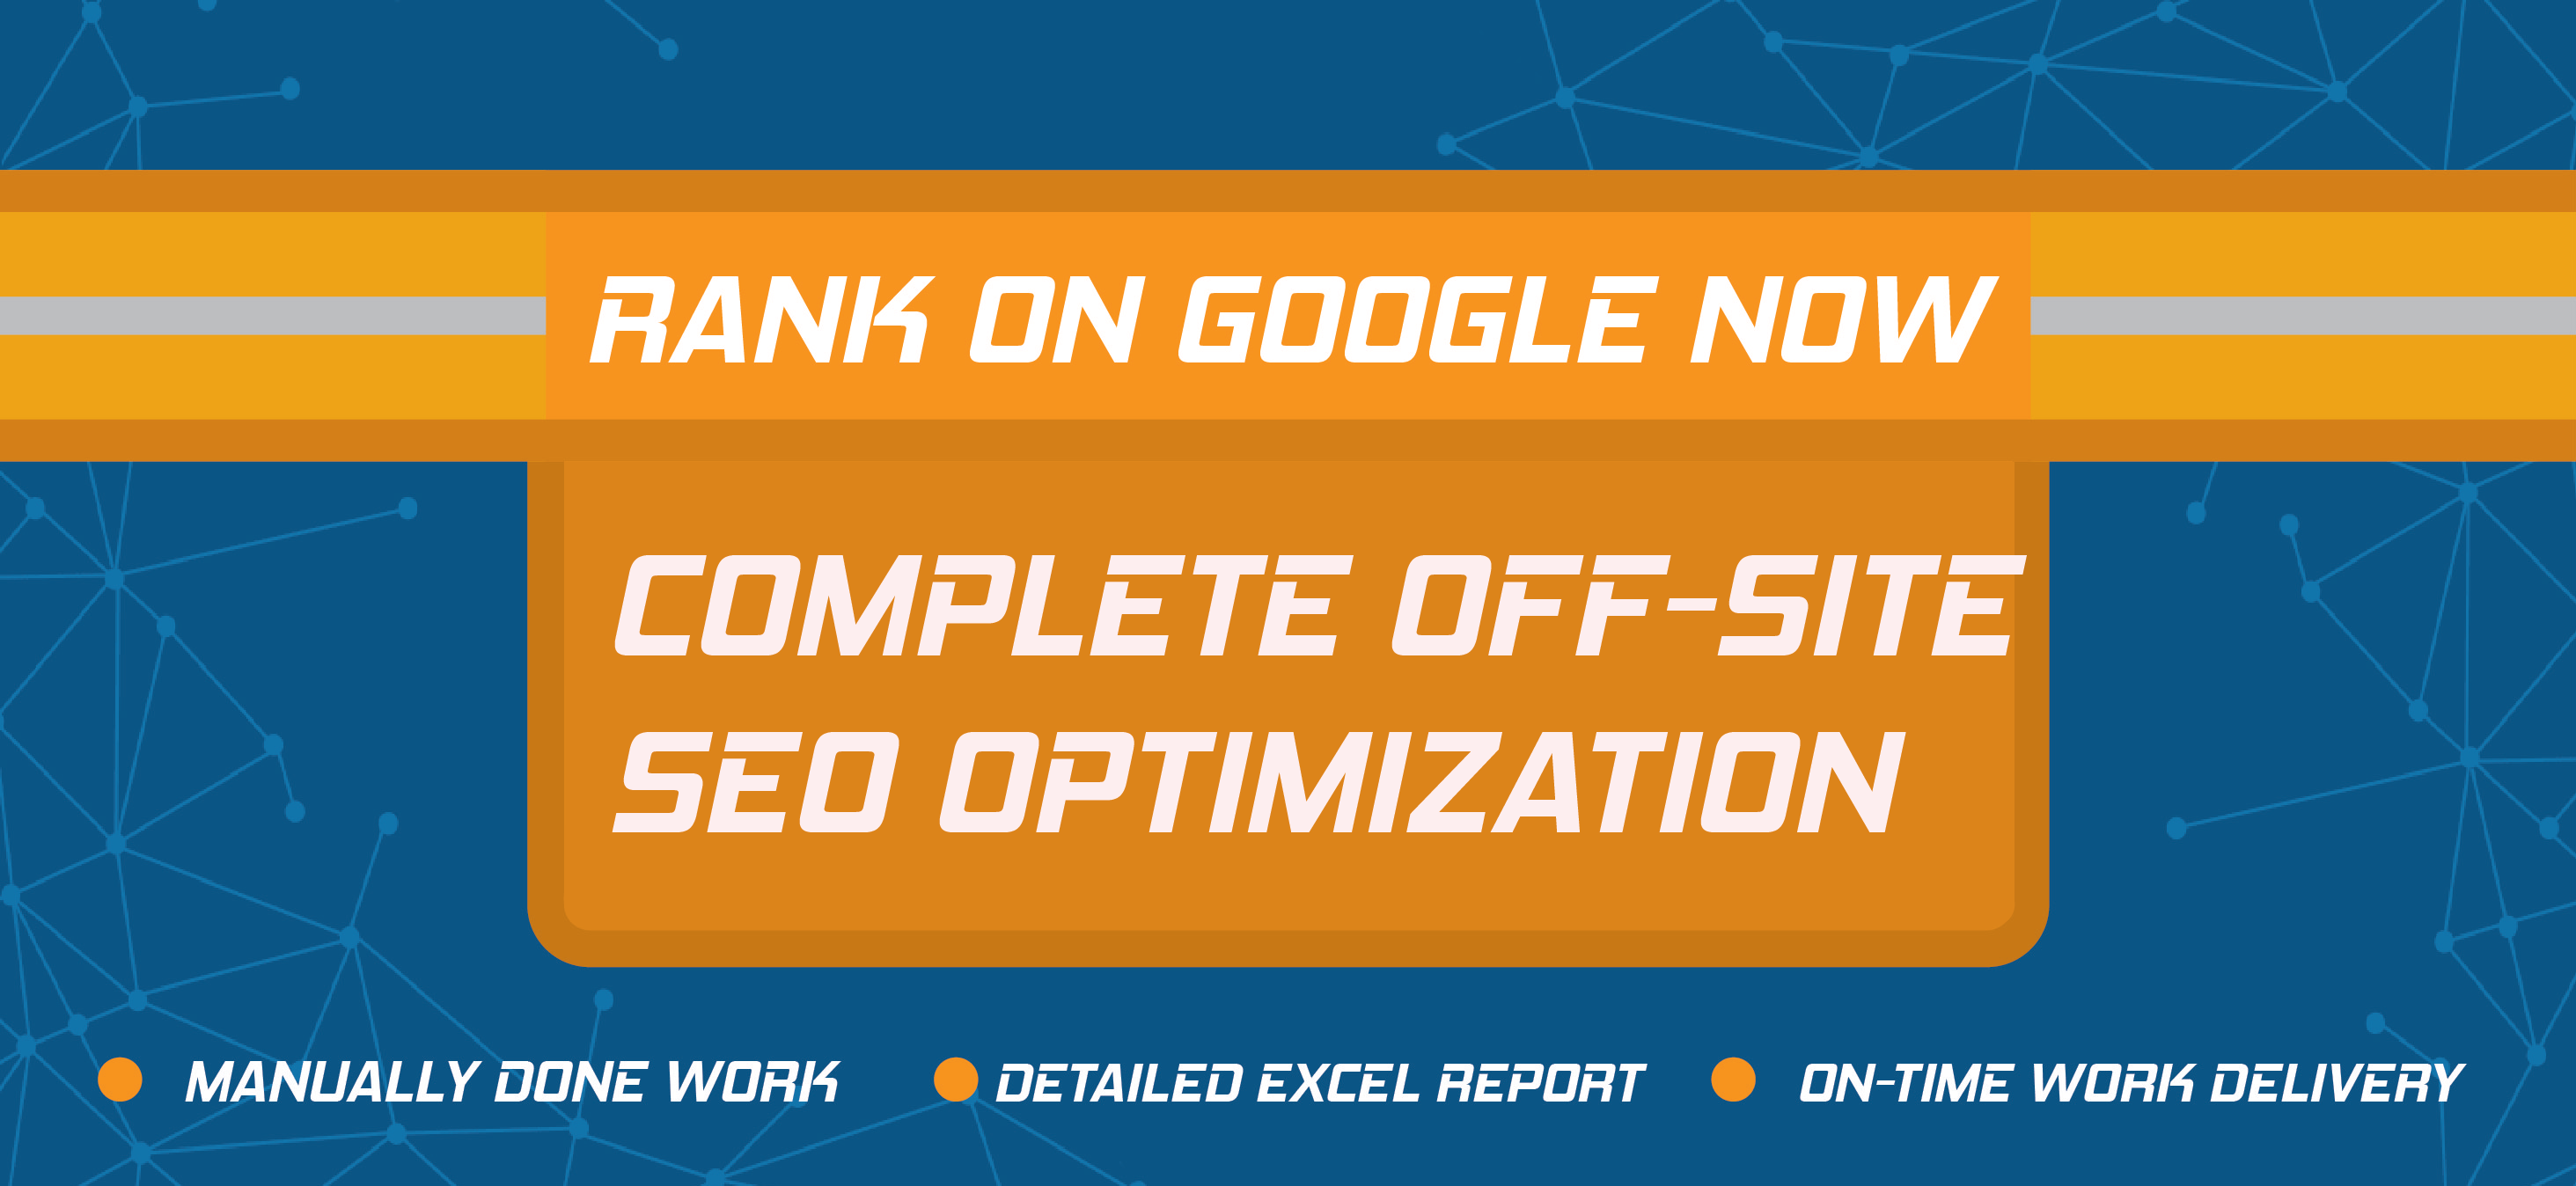 COMPLETE OFF-SITE SEO OPTIMIZATION